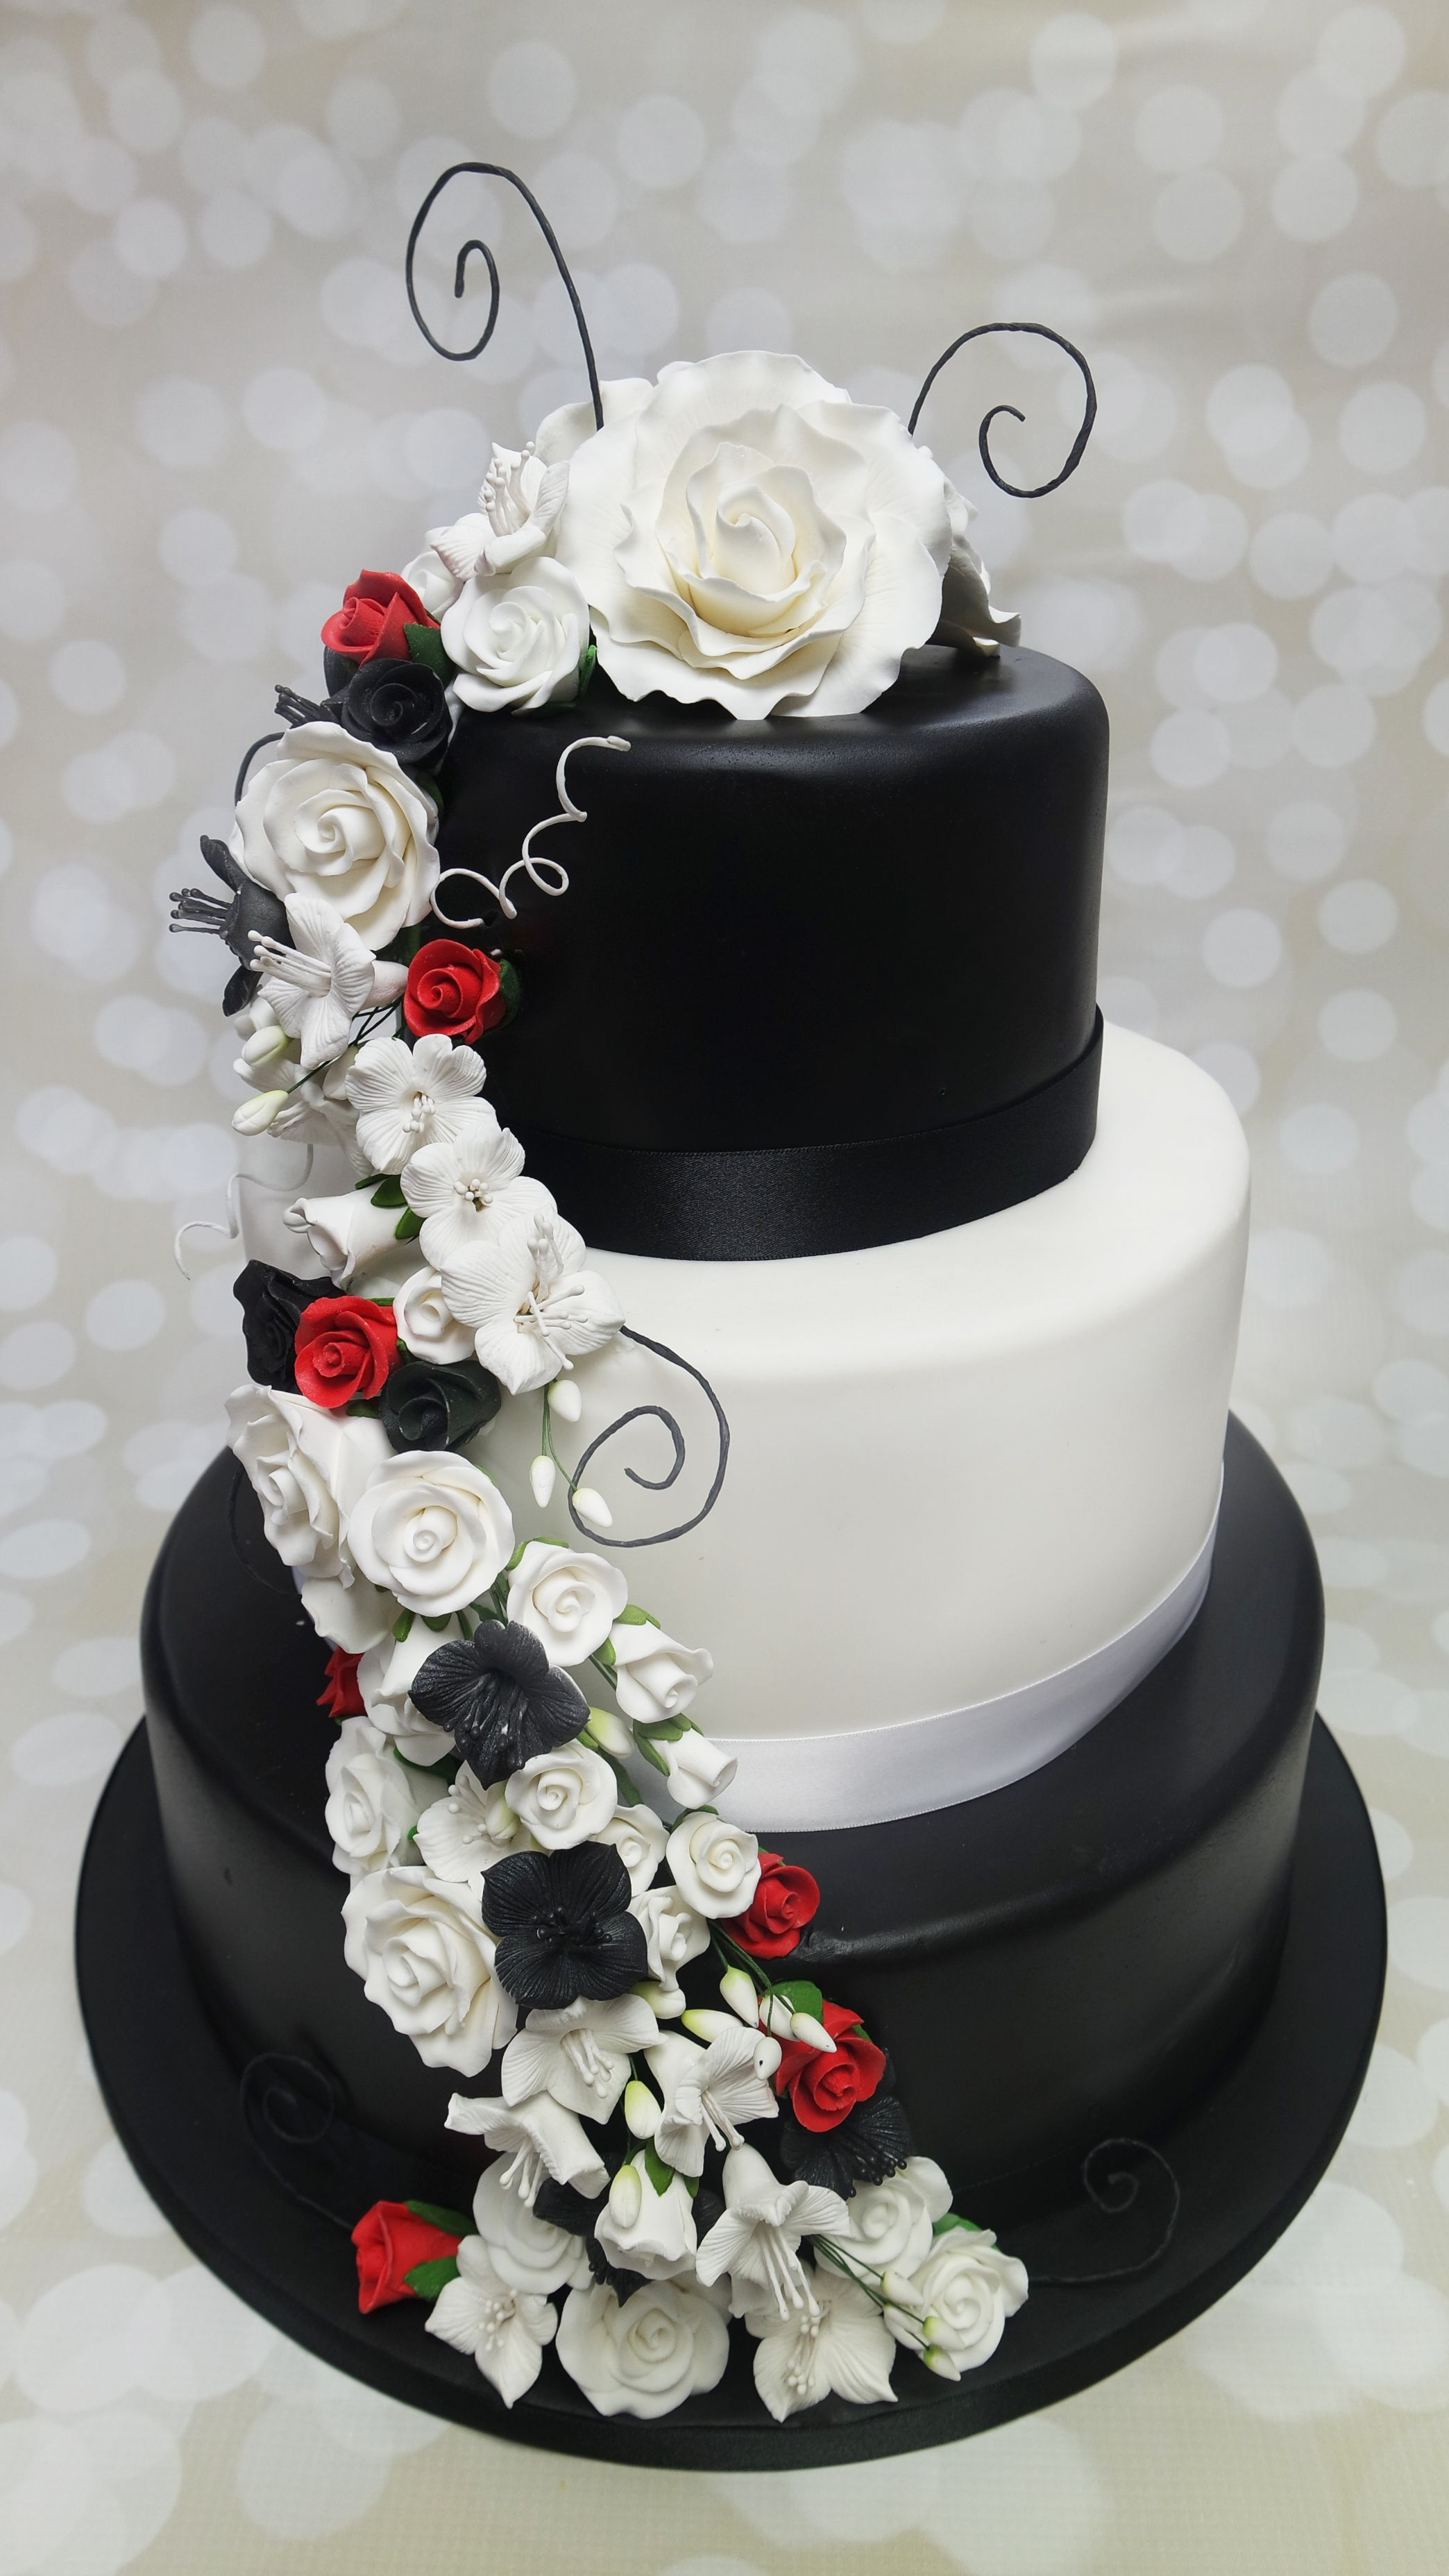 Elegant black and white wedding cake with a hint of red